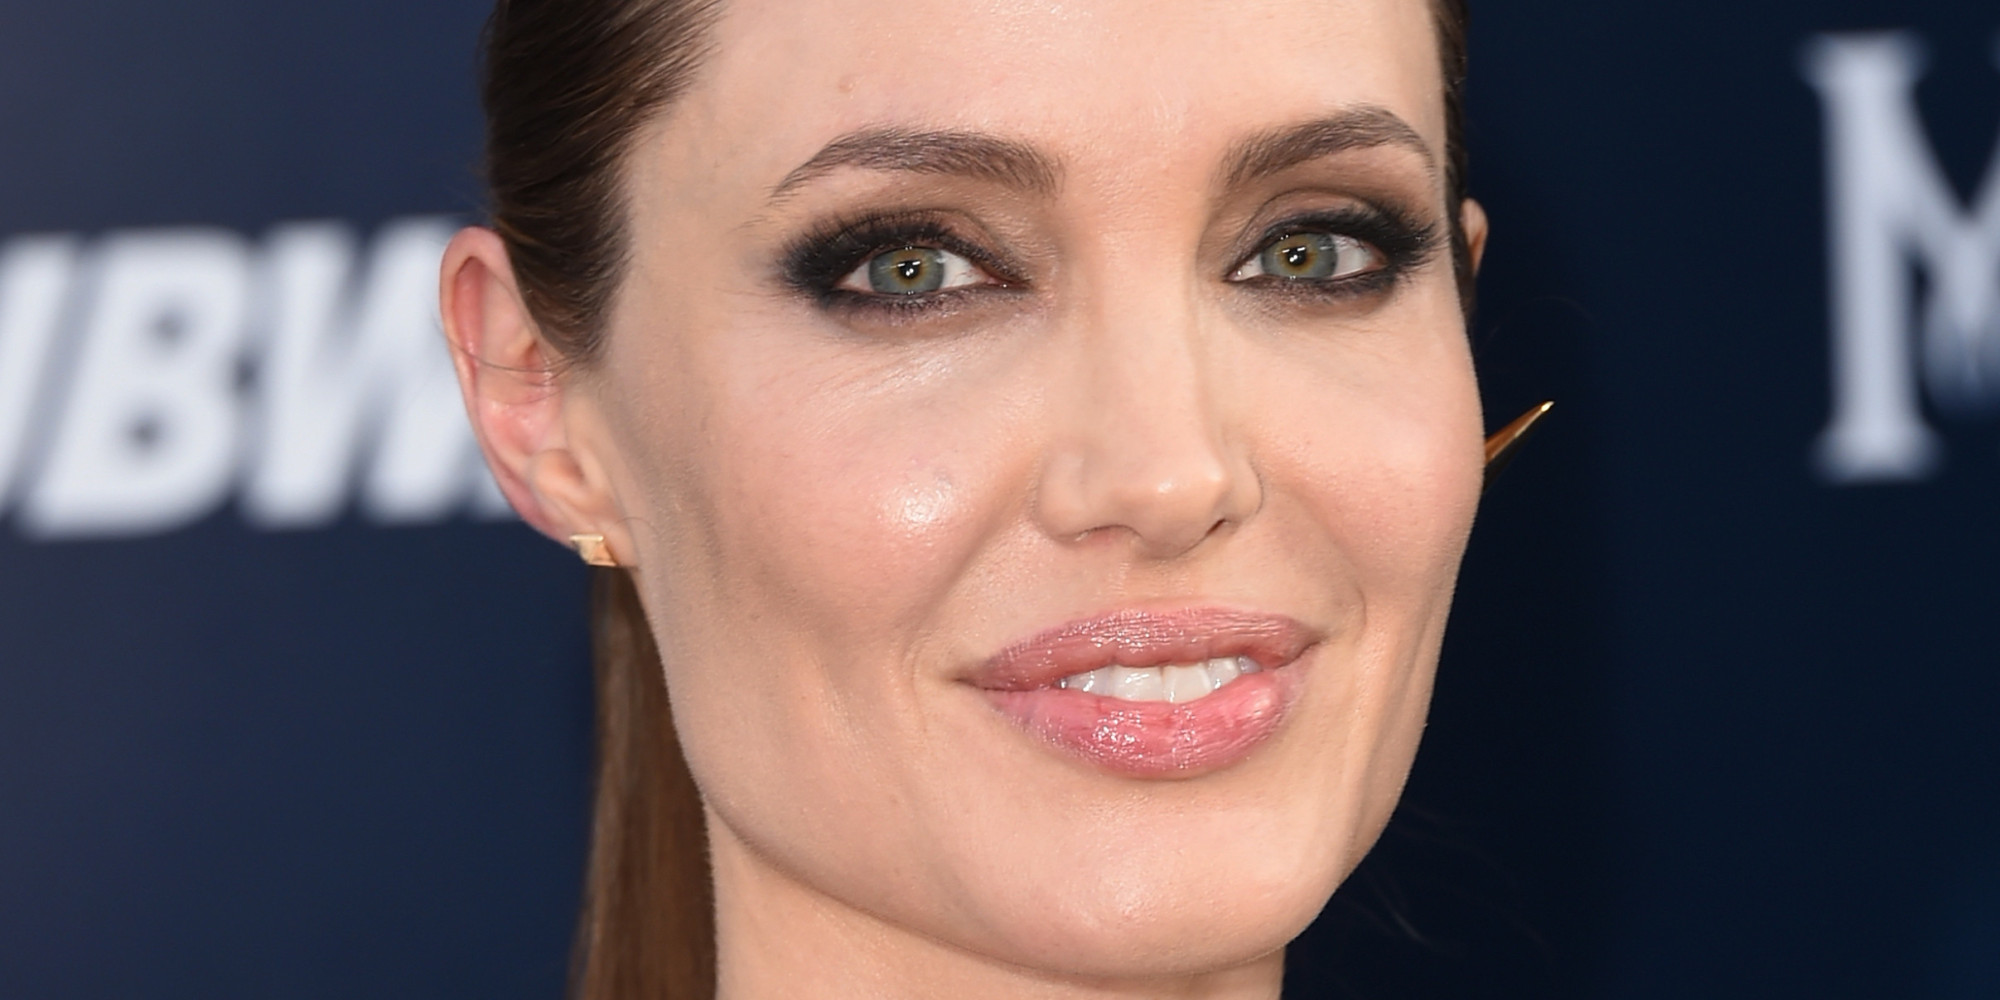 Angelina Jolie: Angelina Jolie Revives Her 'Tomb Raider' Look On Our Best